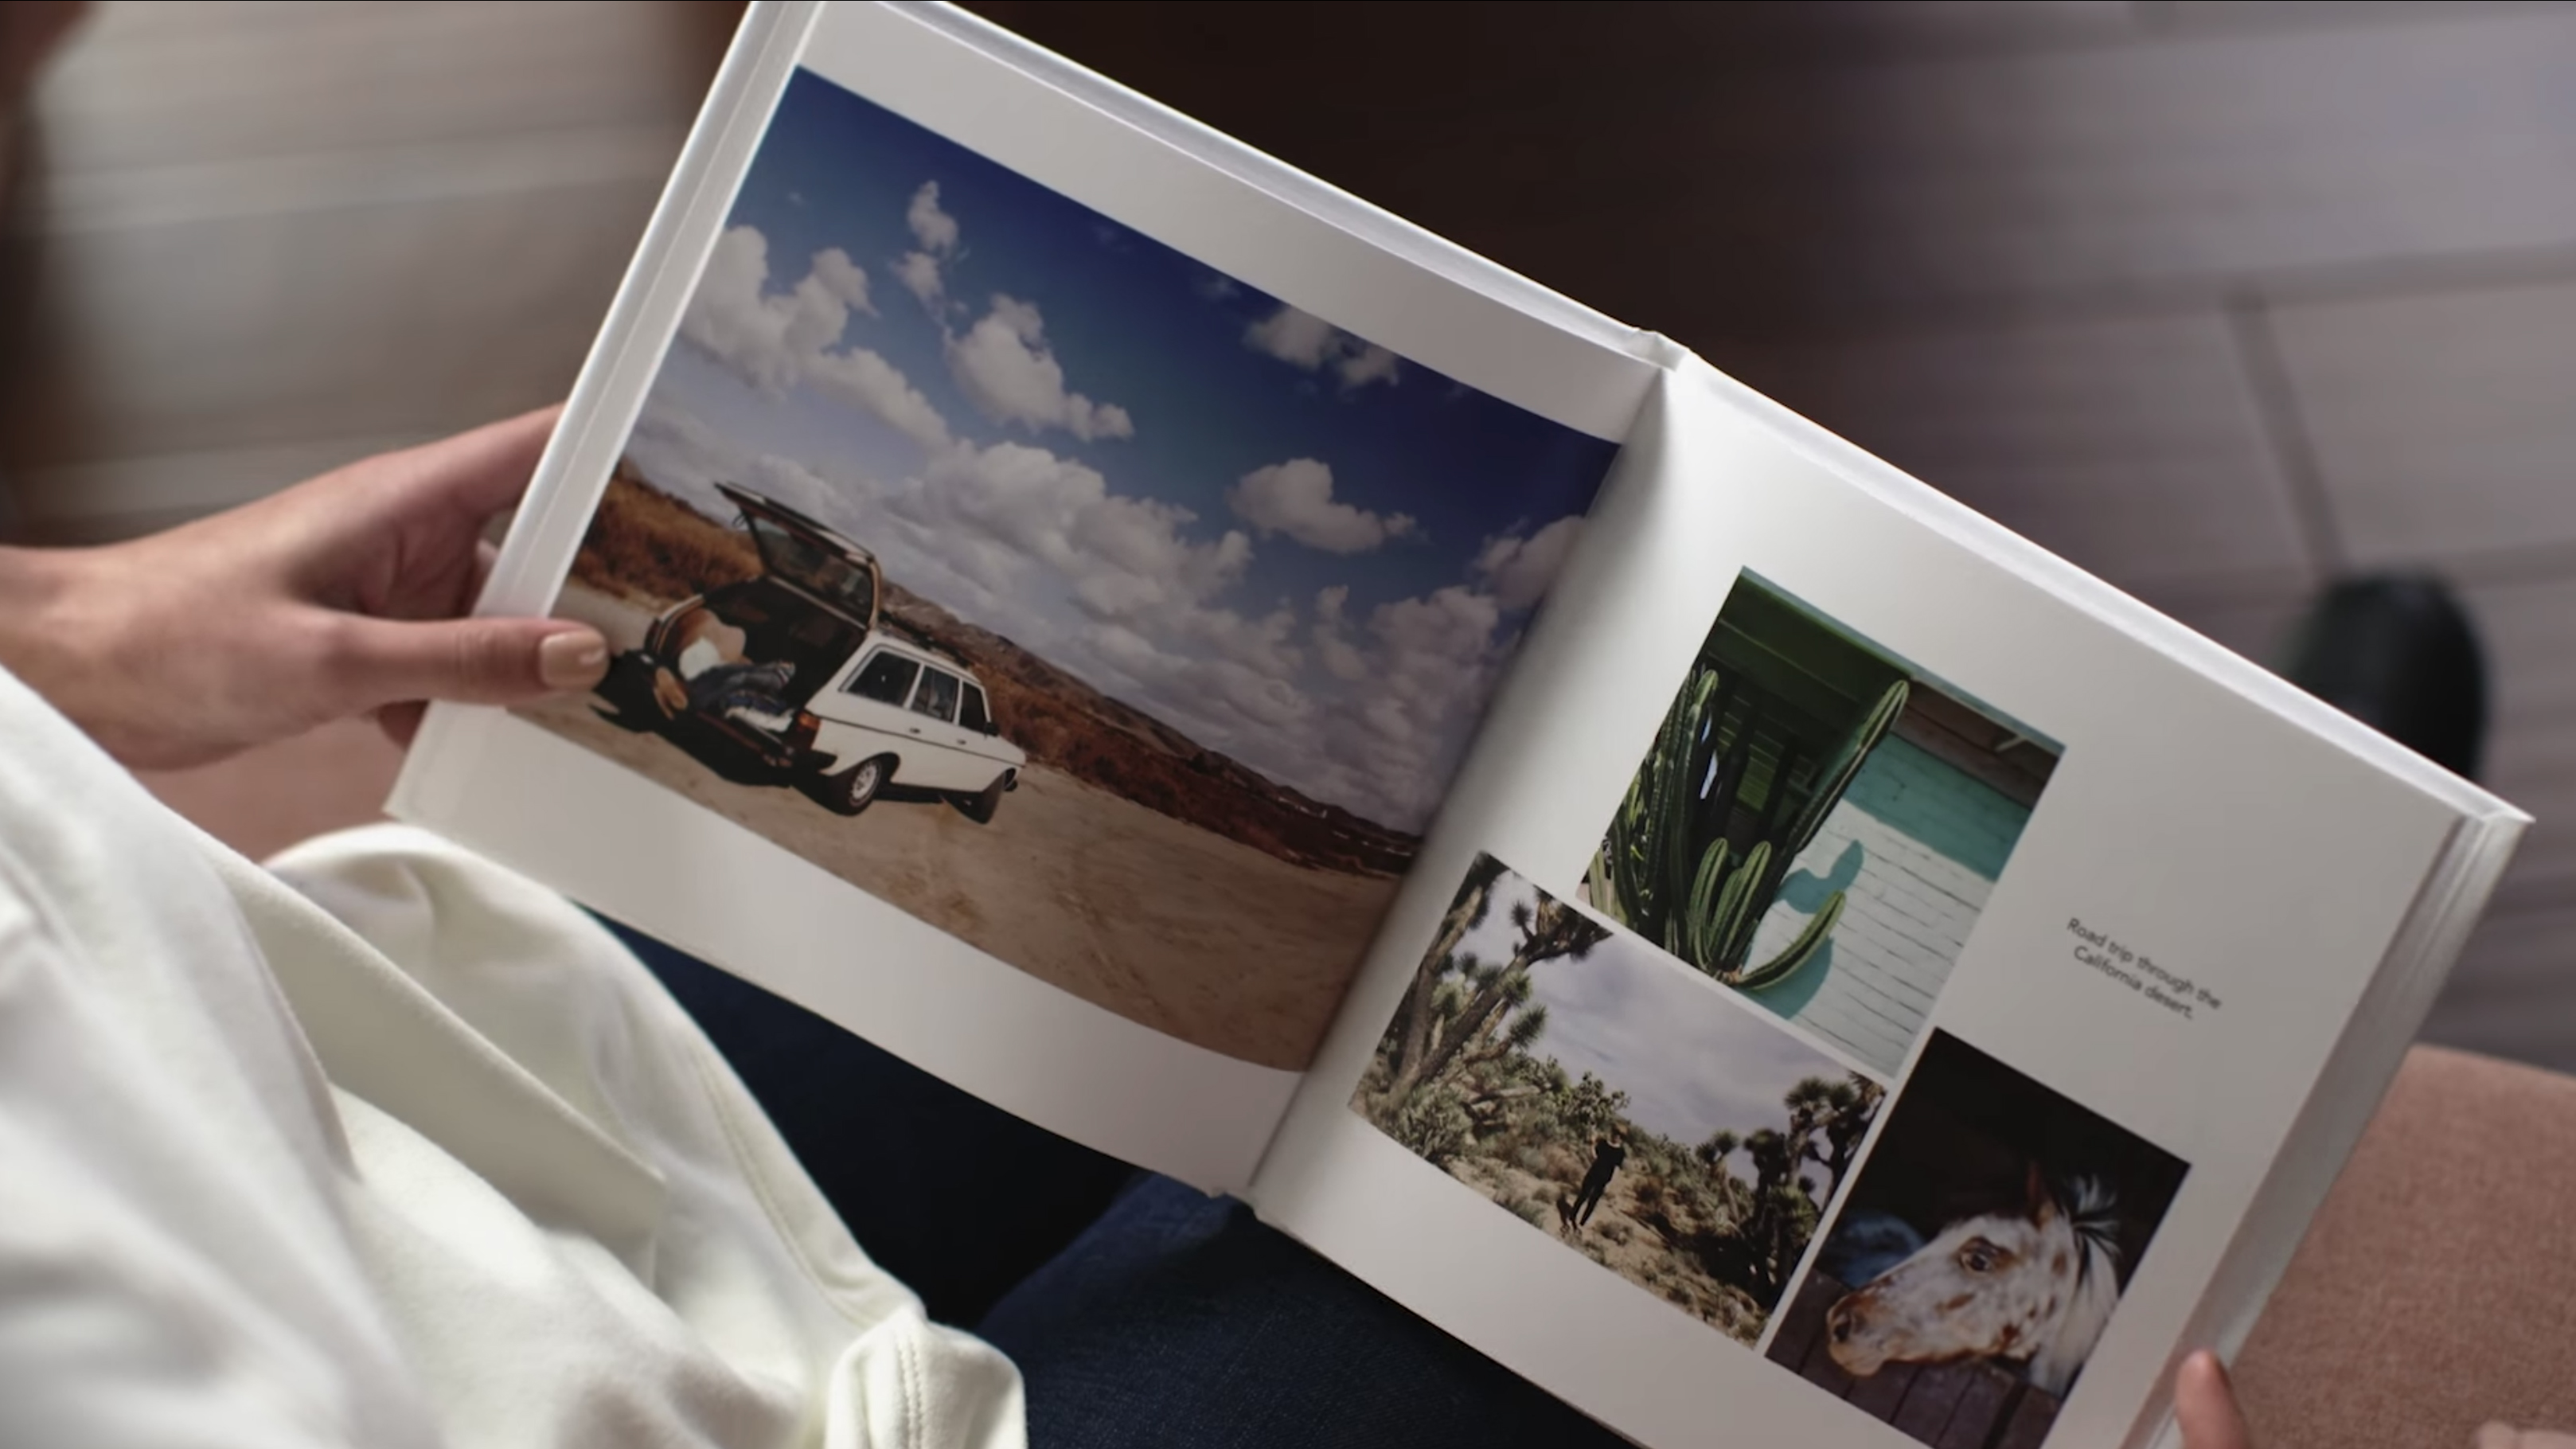 Best Photo Books 2019: Reviews and Advice on Online Photo